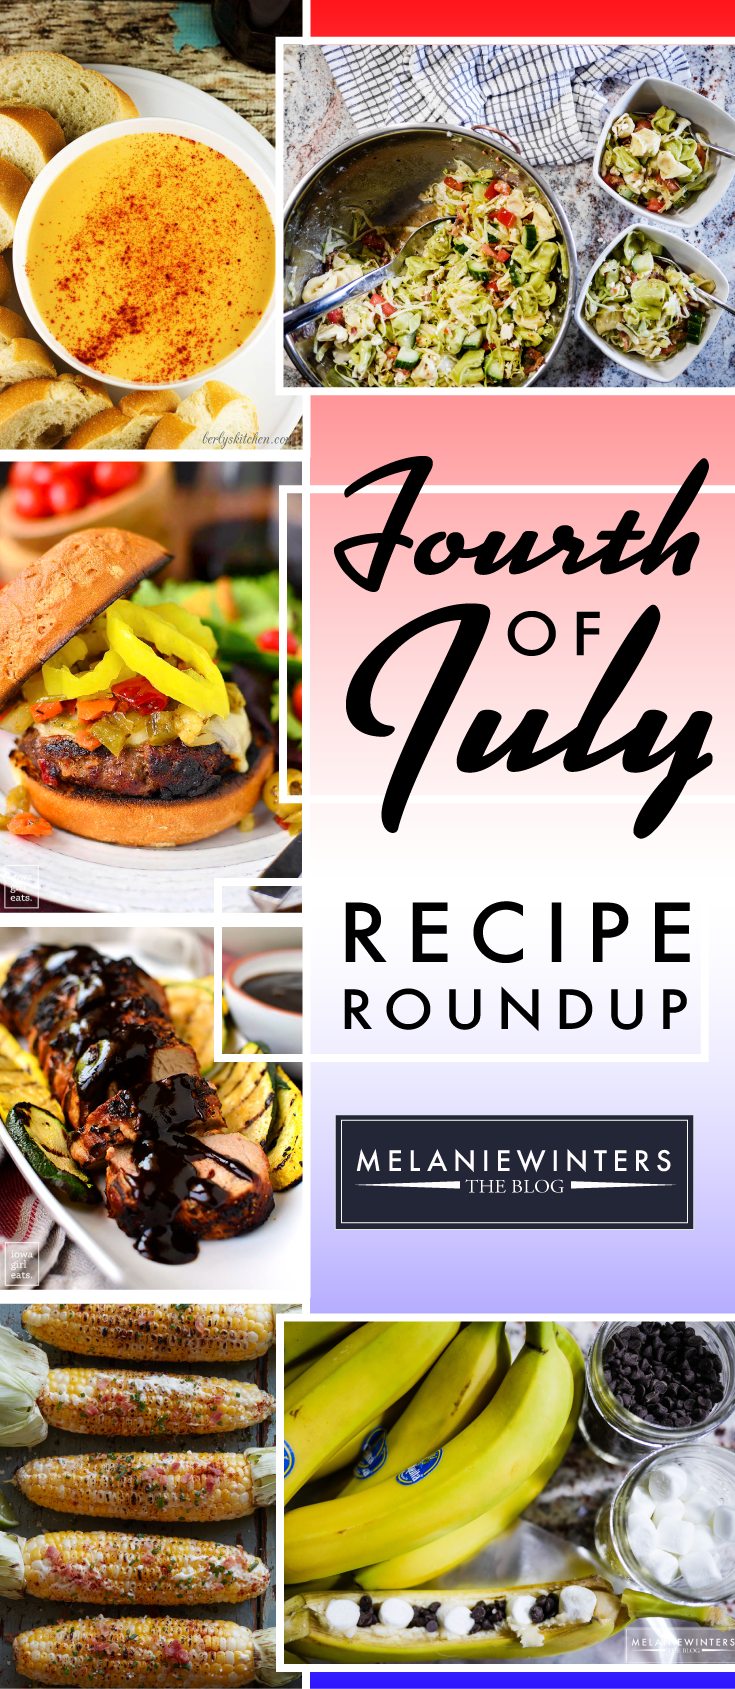 Get those grills fired up, it's time for the best day of the summer! Check out our favorite recipes fit for an epic Fourth of July.